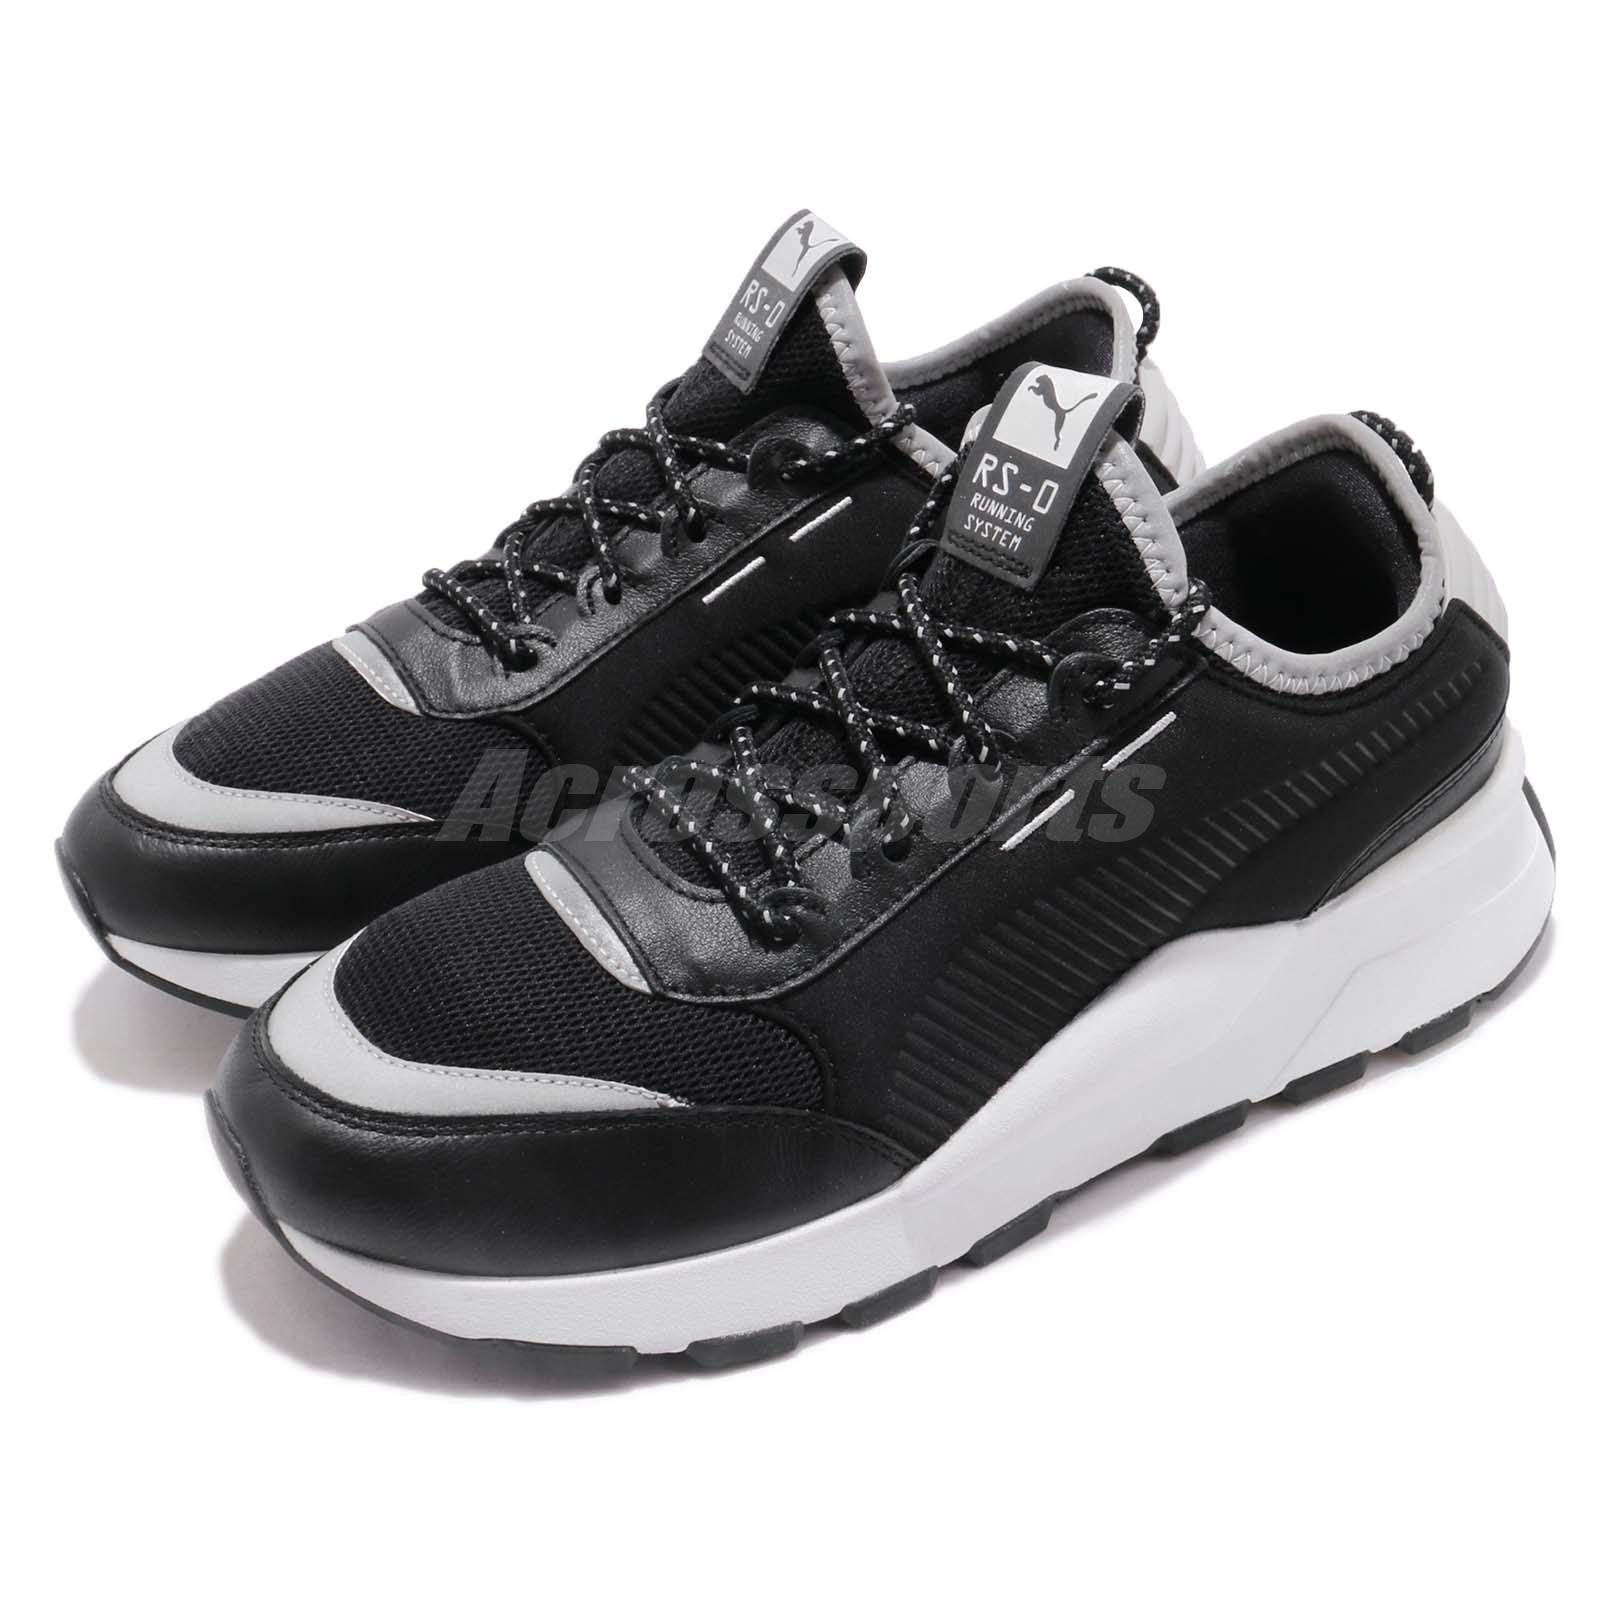 Details about Puma RS-0 OPTIC POP Black Silver White Men Running Shoes  Sneakers 367680-02